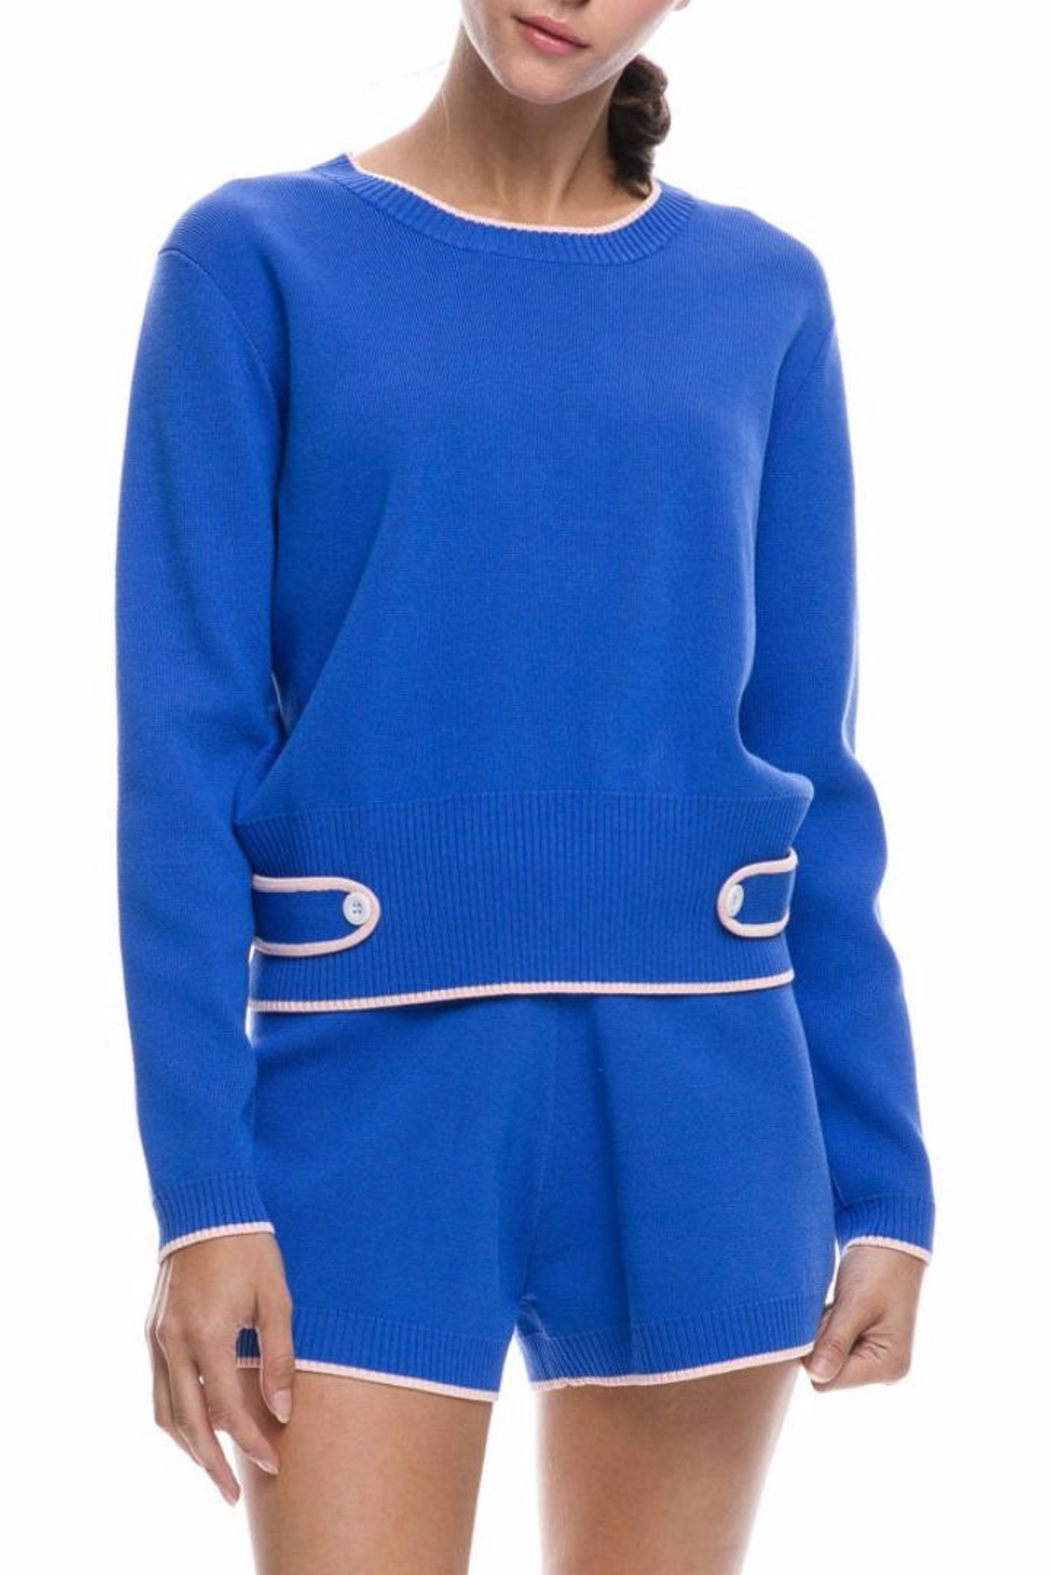 English Factory Blue Knit Top - Back Cropped Image